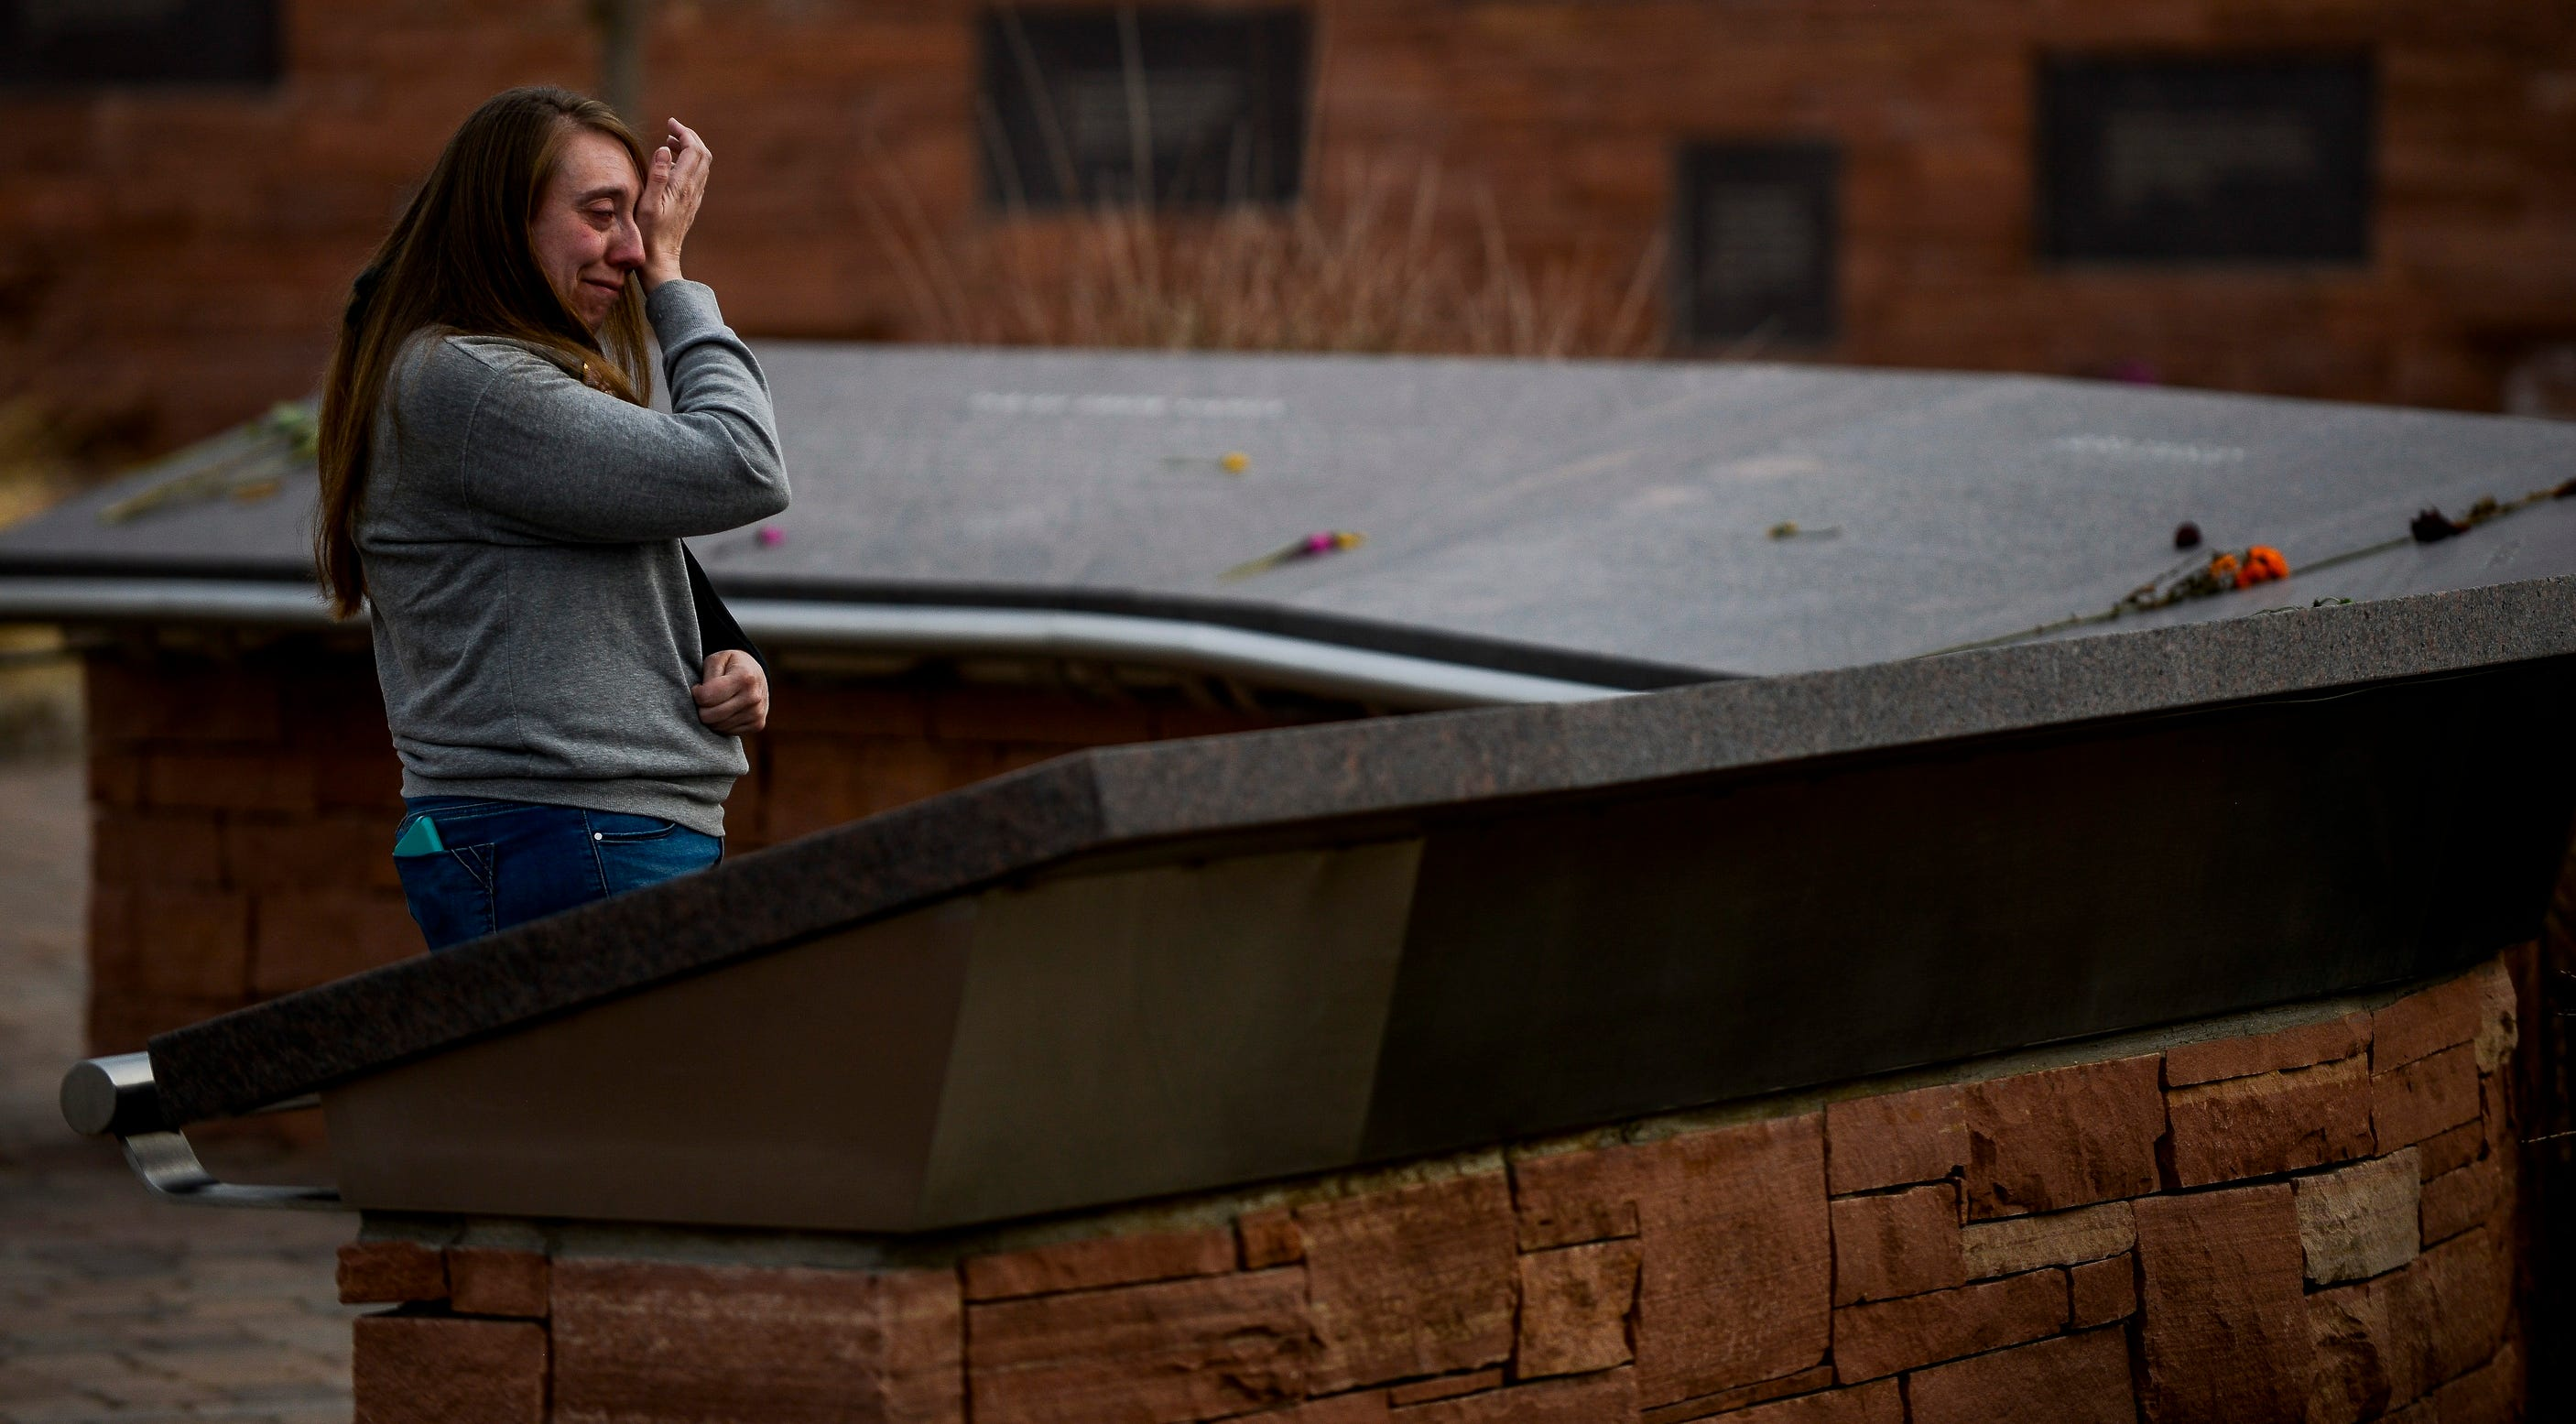 Nicole Boudreau, who was a freshman at Columbine High School during the 1999 mass shooting, wipes away a tears as she visits the Columbine Memorial in Littleton, Colo. on April 2, 2019.